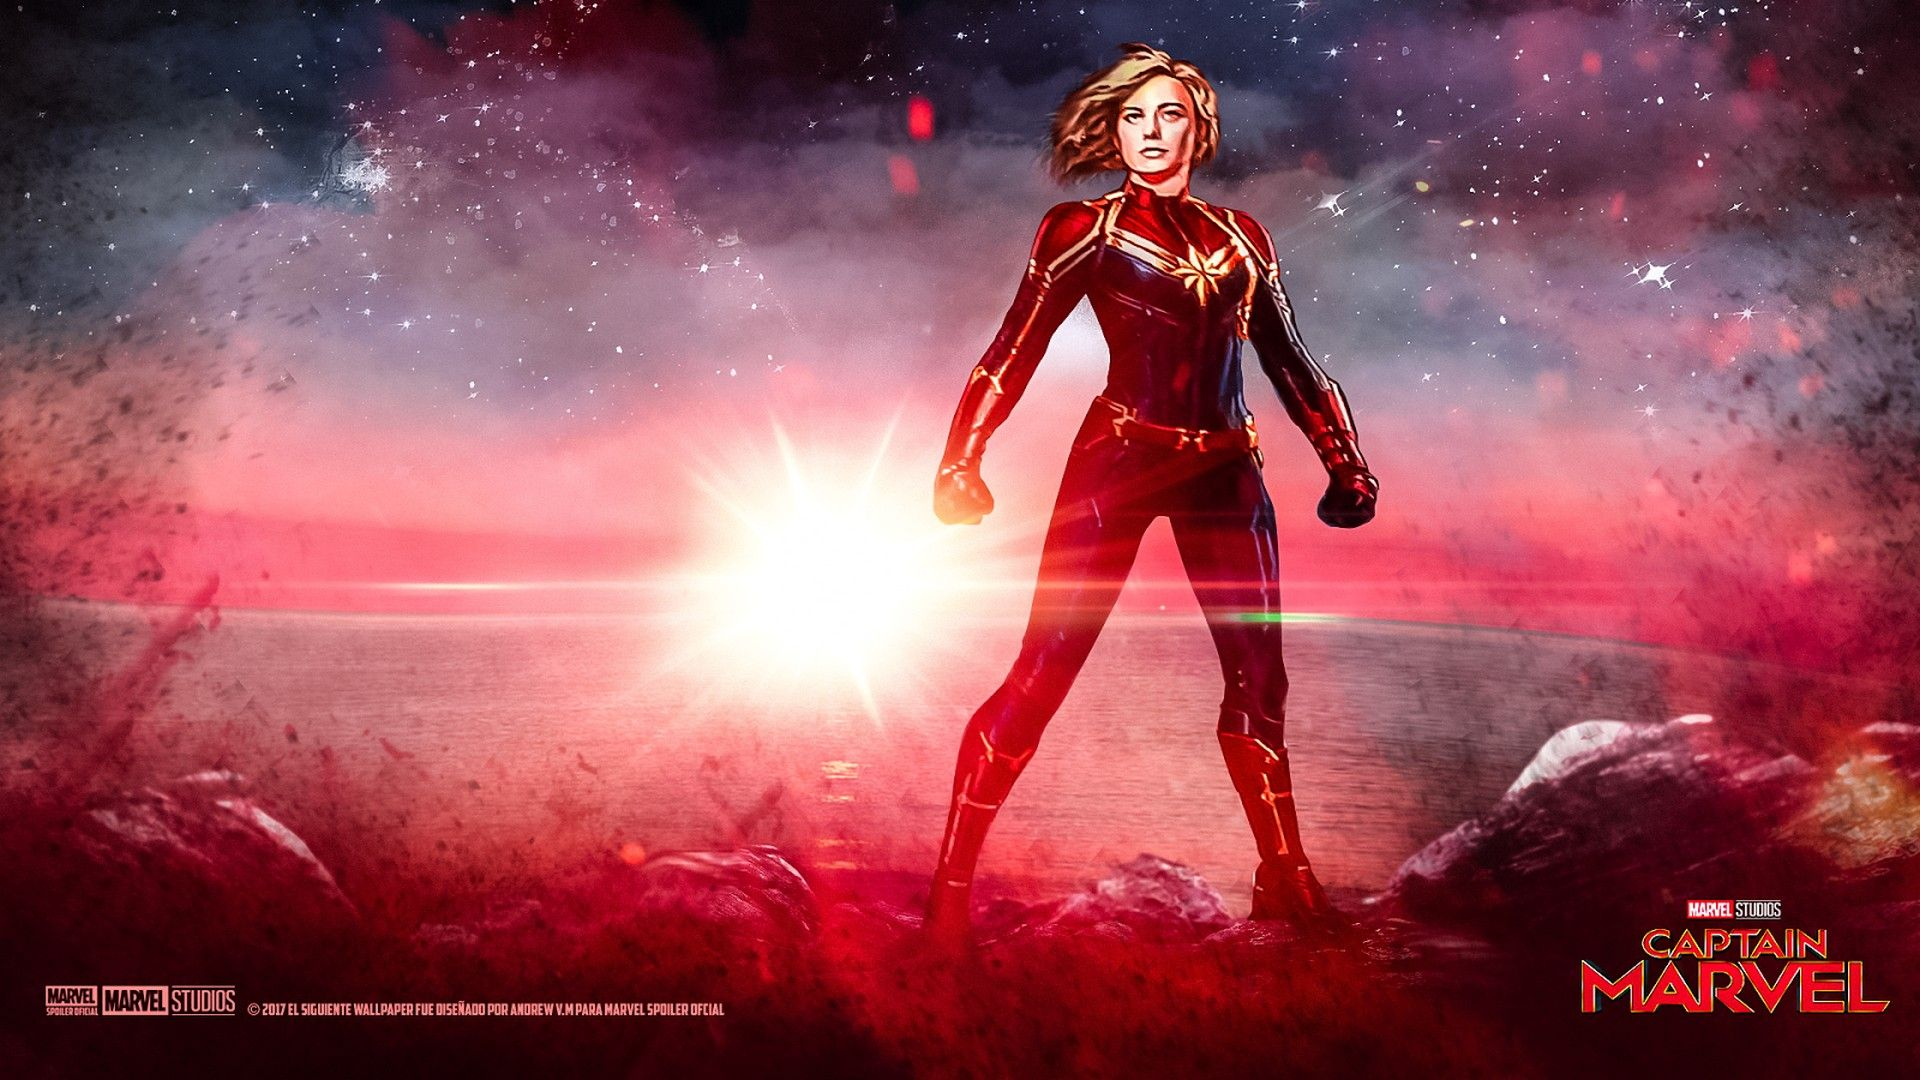 Wallpapers Captain Marvel Best Movie Poster Wallpaper Hd Captain Marvel Marvel Images Marvel Wallpaper